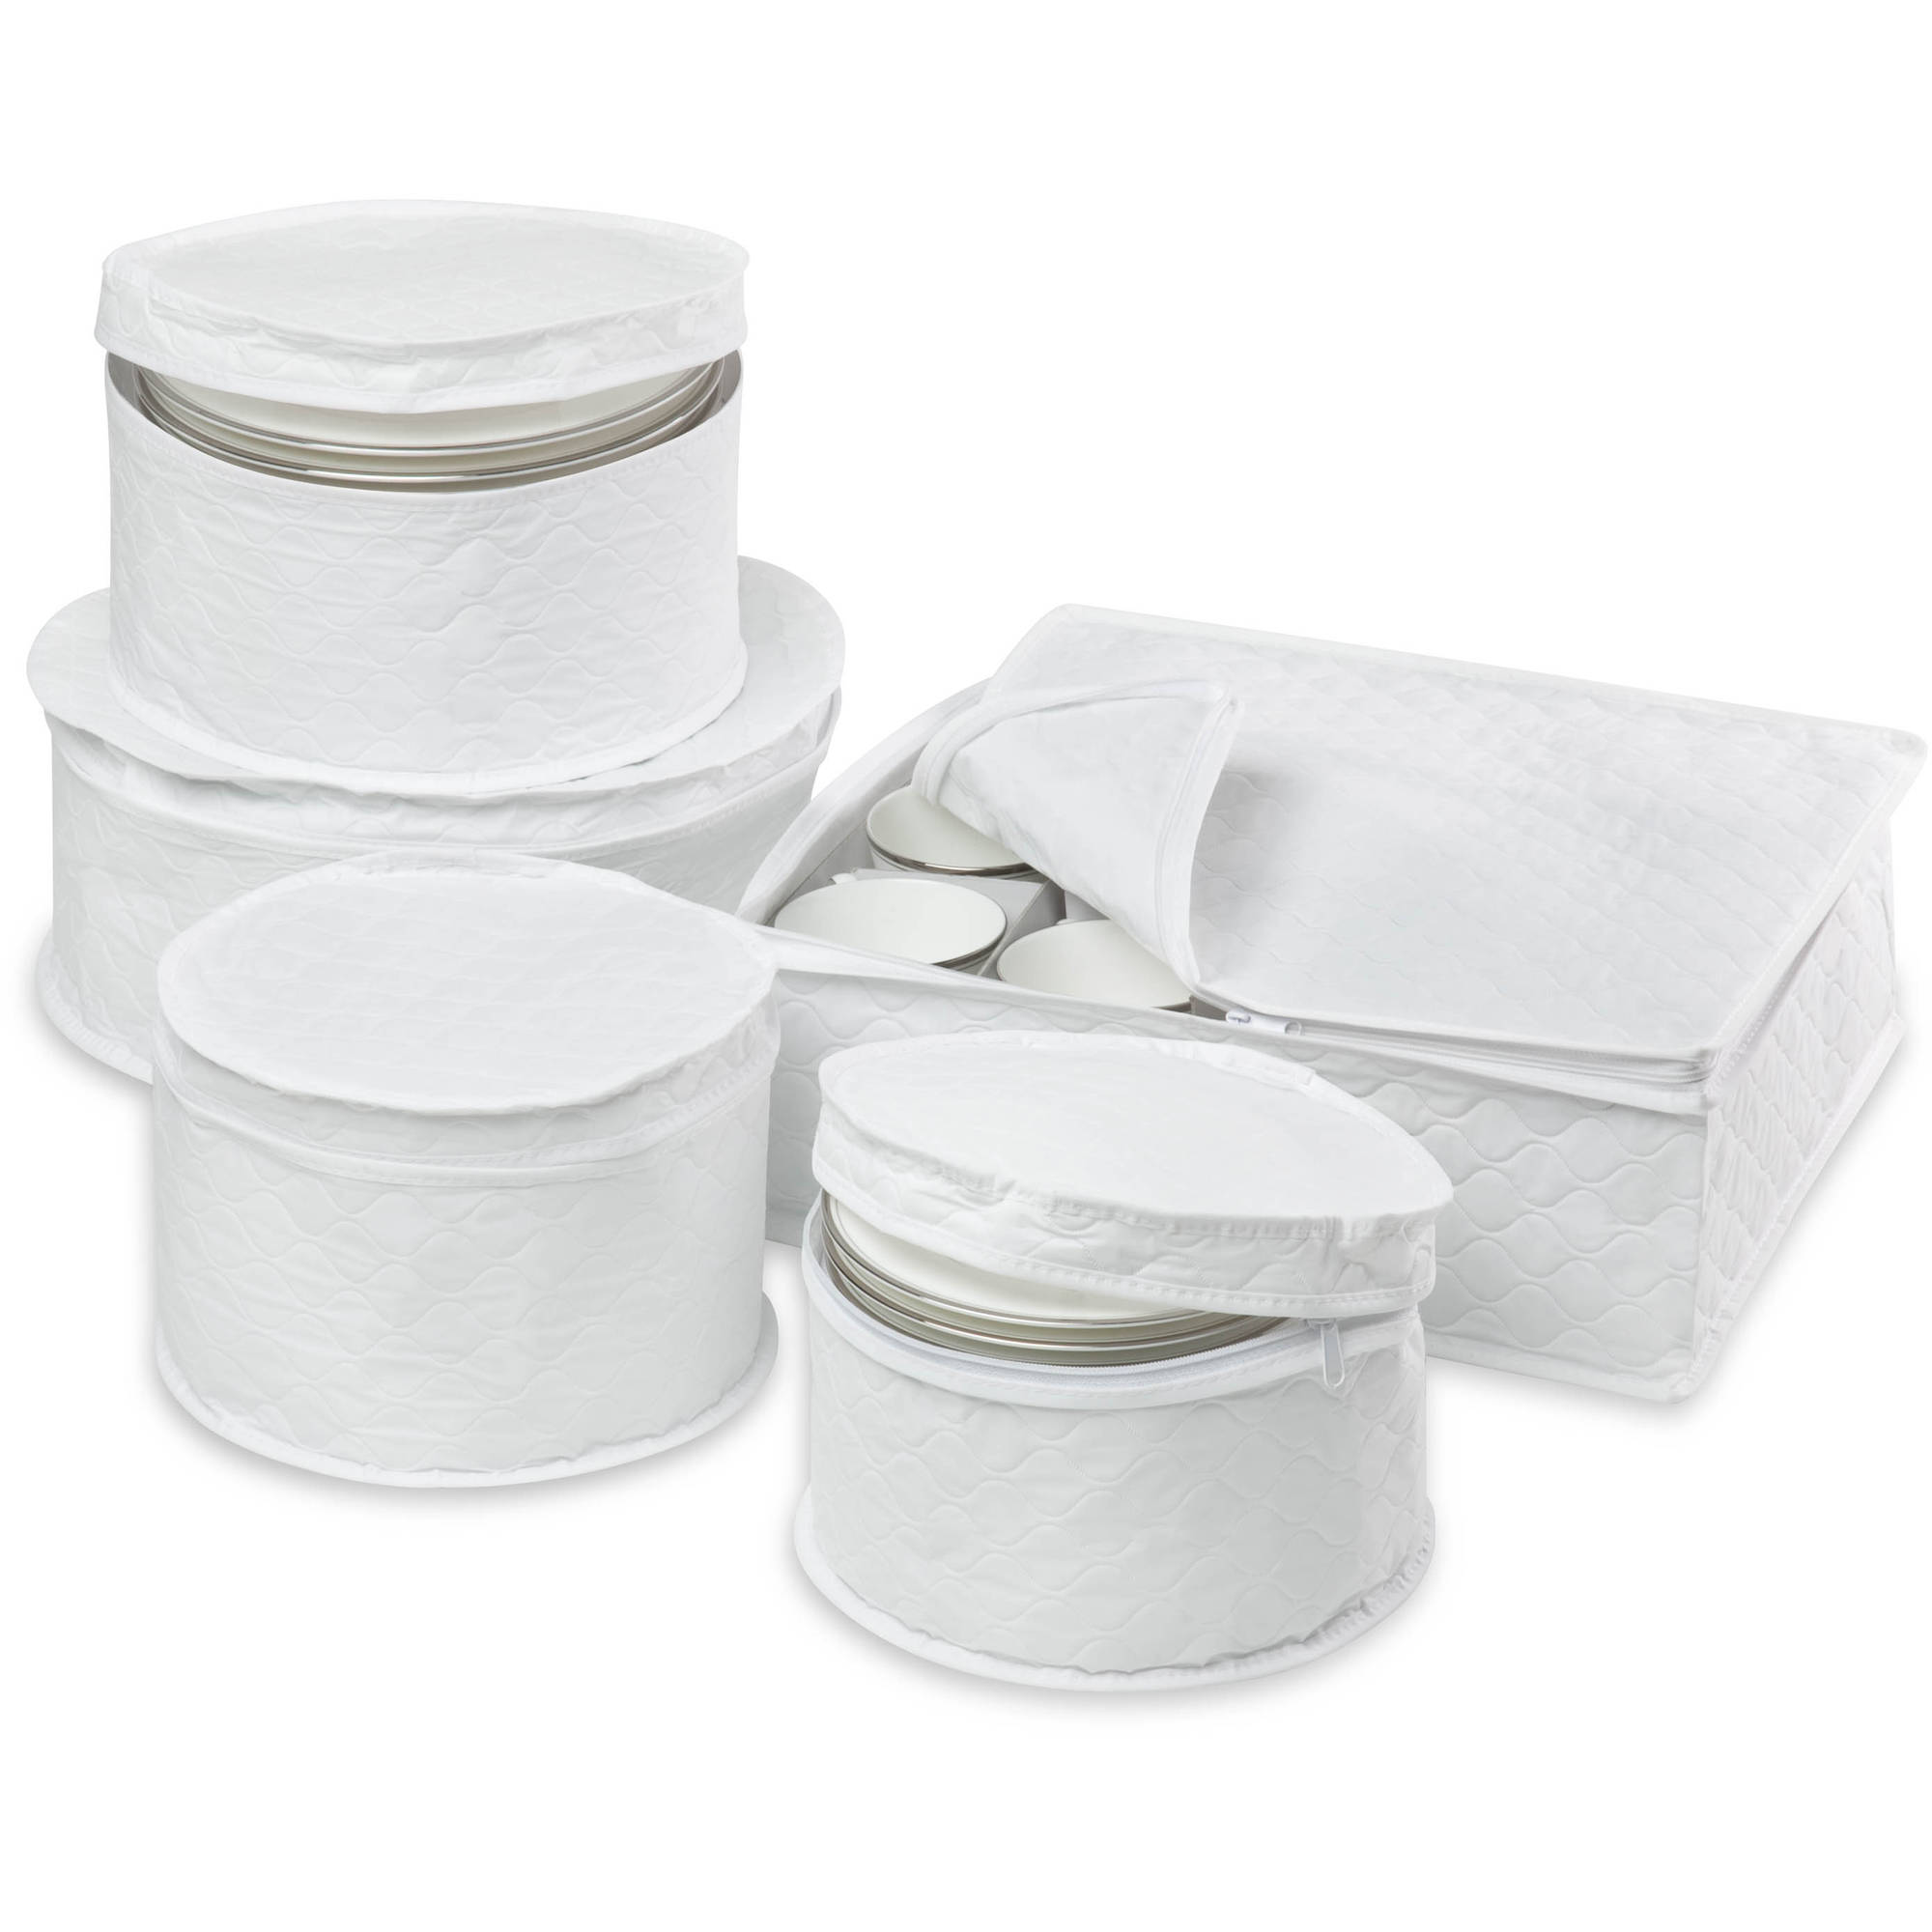 Honey Can Do 5pc Dinnerware Storage Set with Stay-Closed Cases White  sc 1 st  Walmart & Dinnerware u0026 Serving Storage - Walmart.com